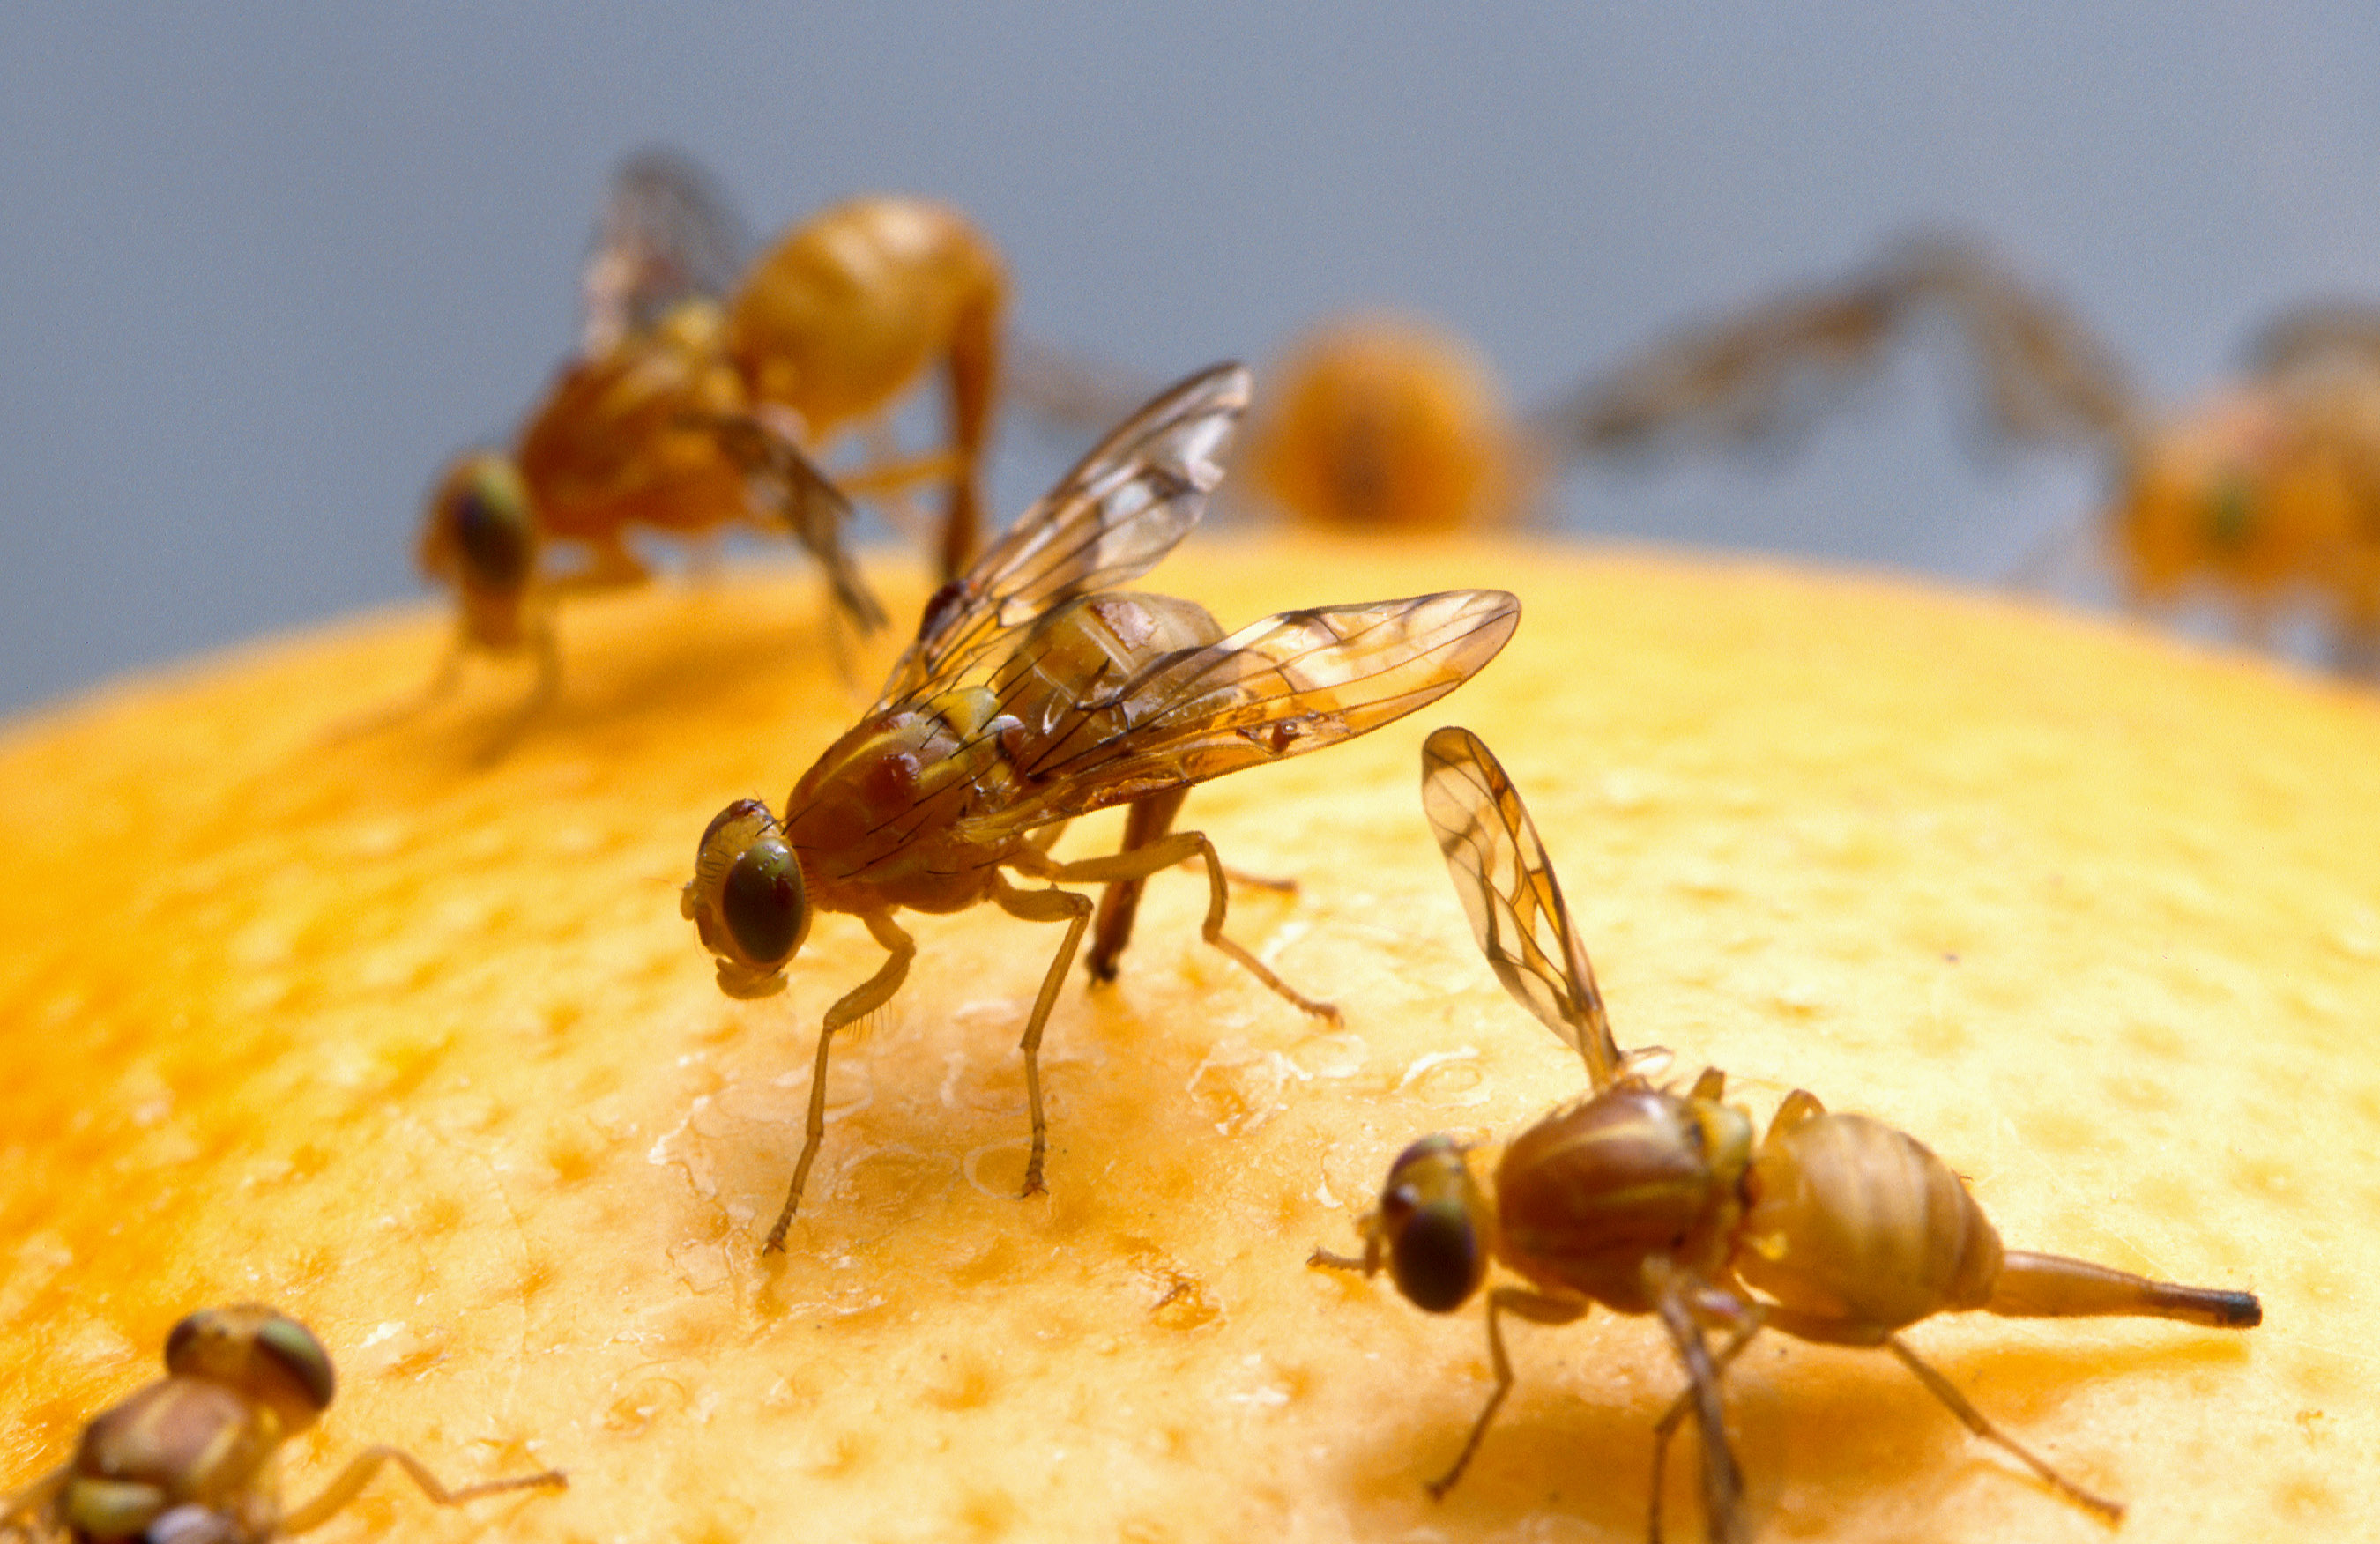 File:female Mexican Fruit Fly